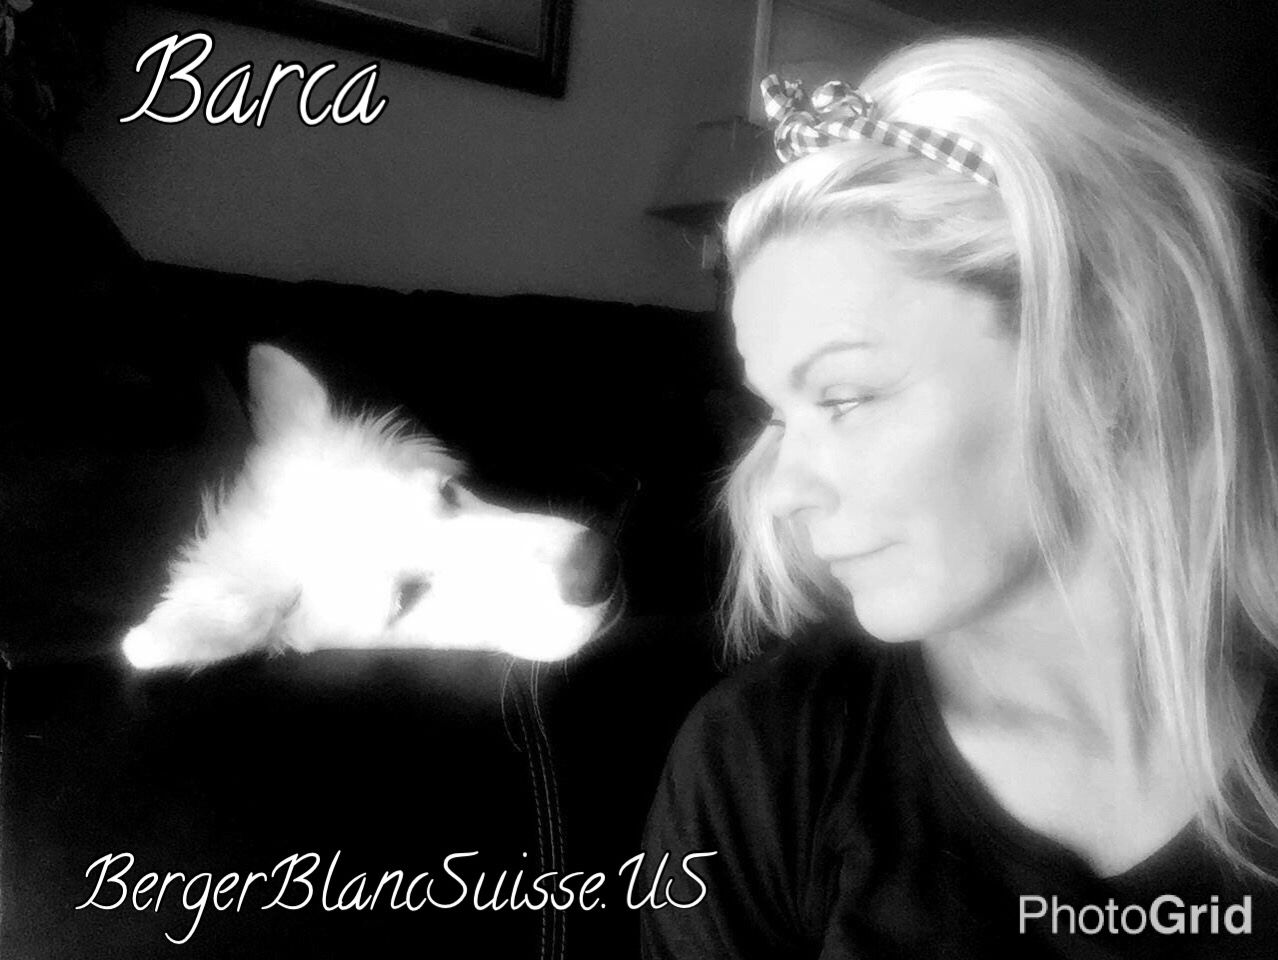 Learn more go to www.BergerBlancSuisse.US